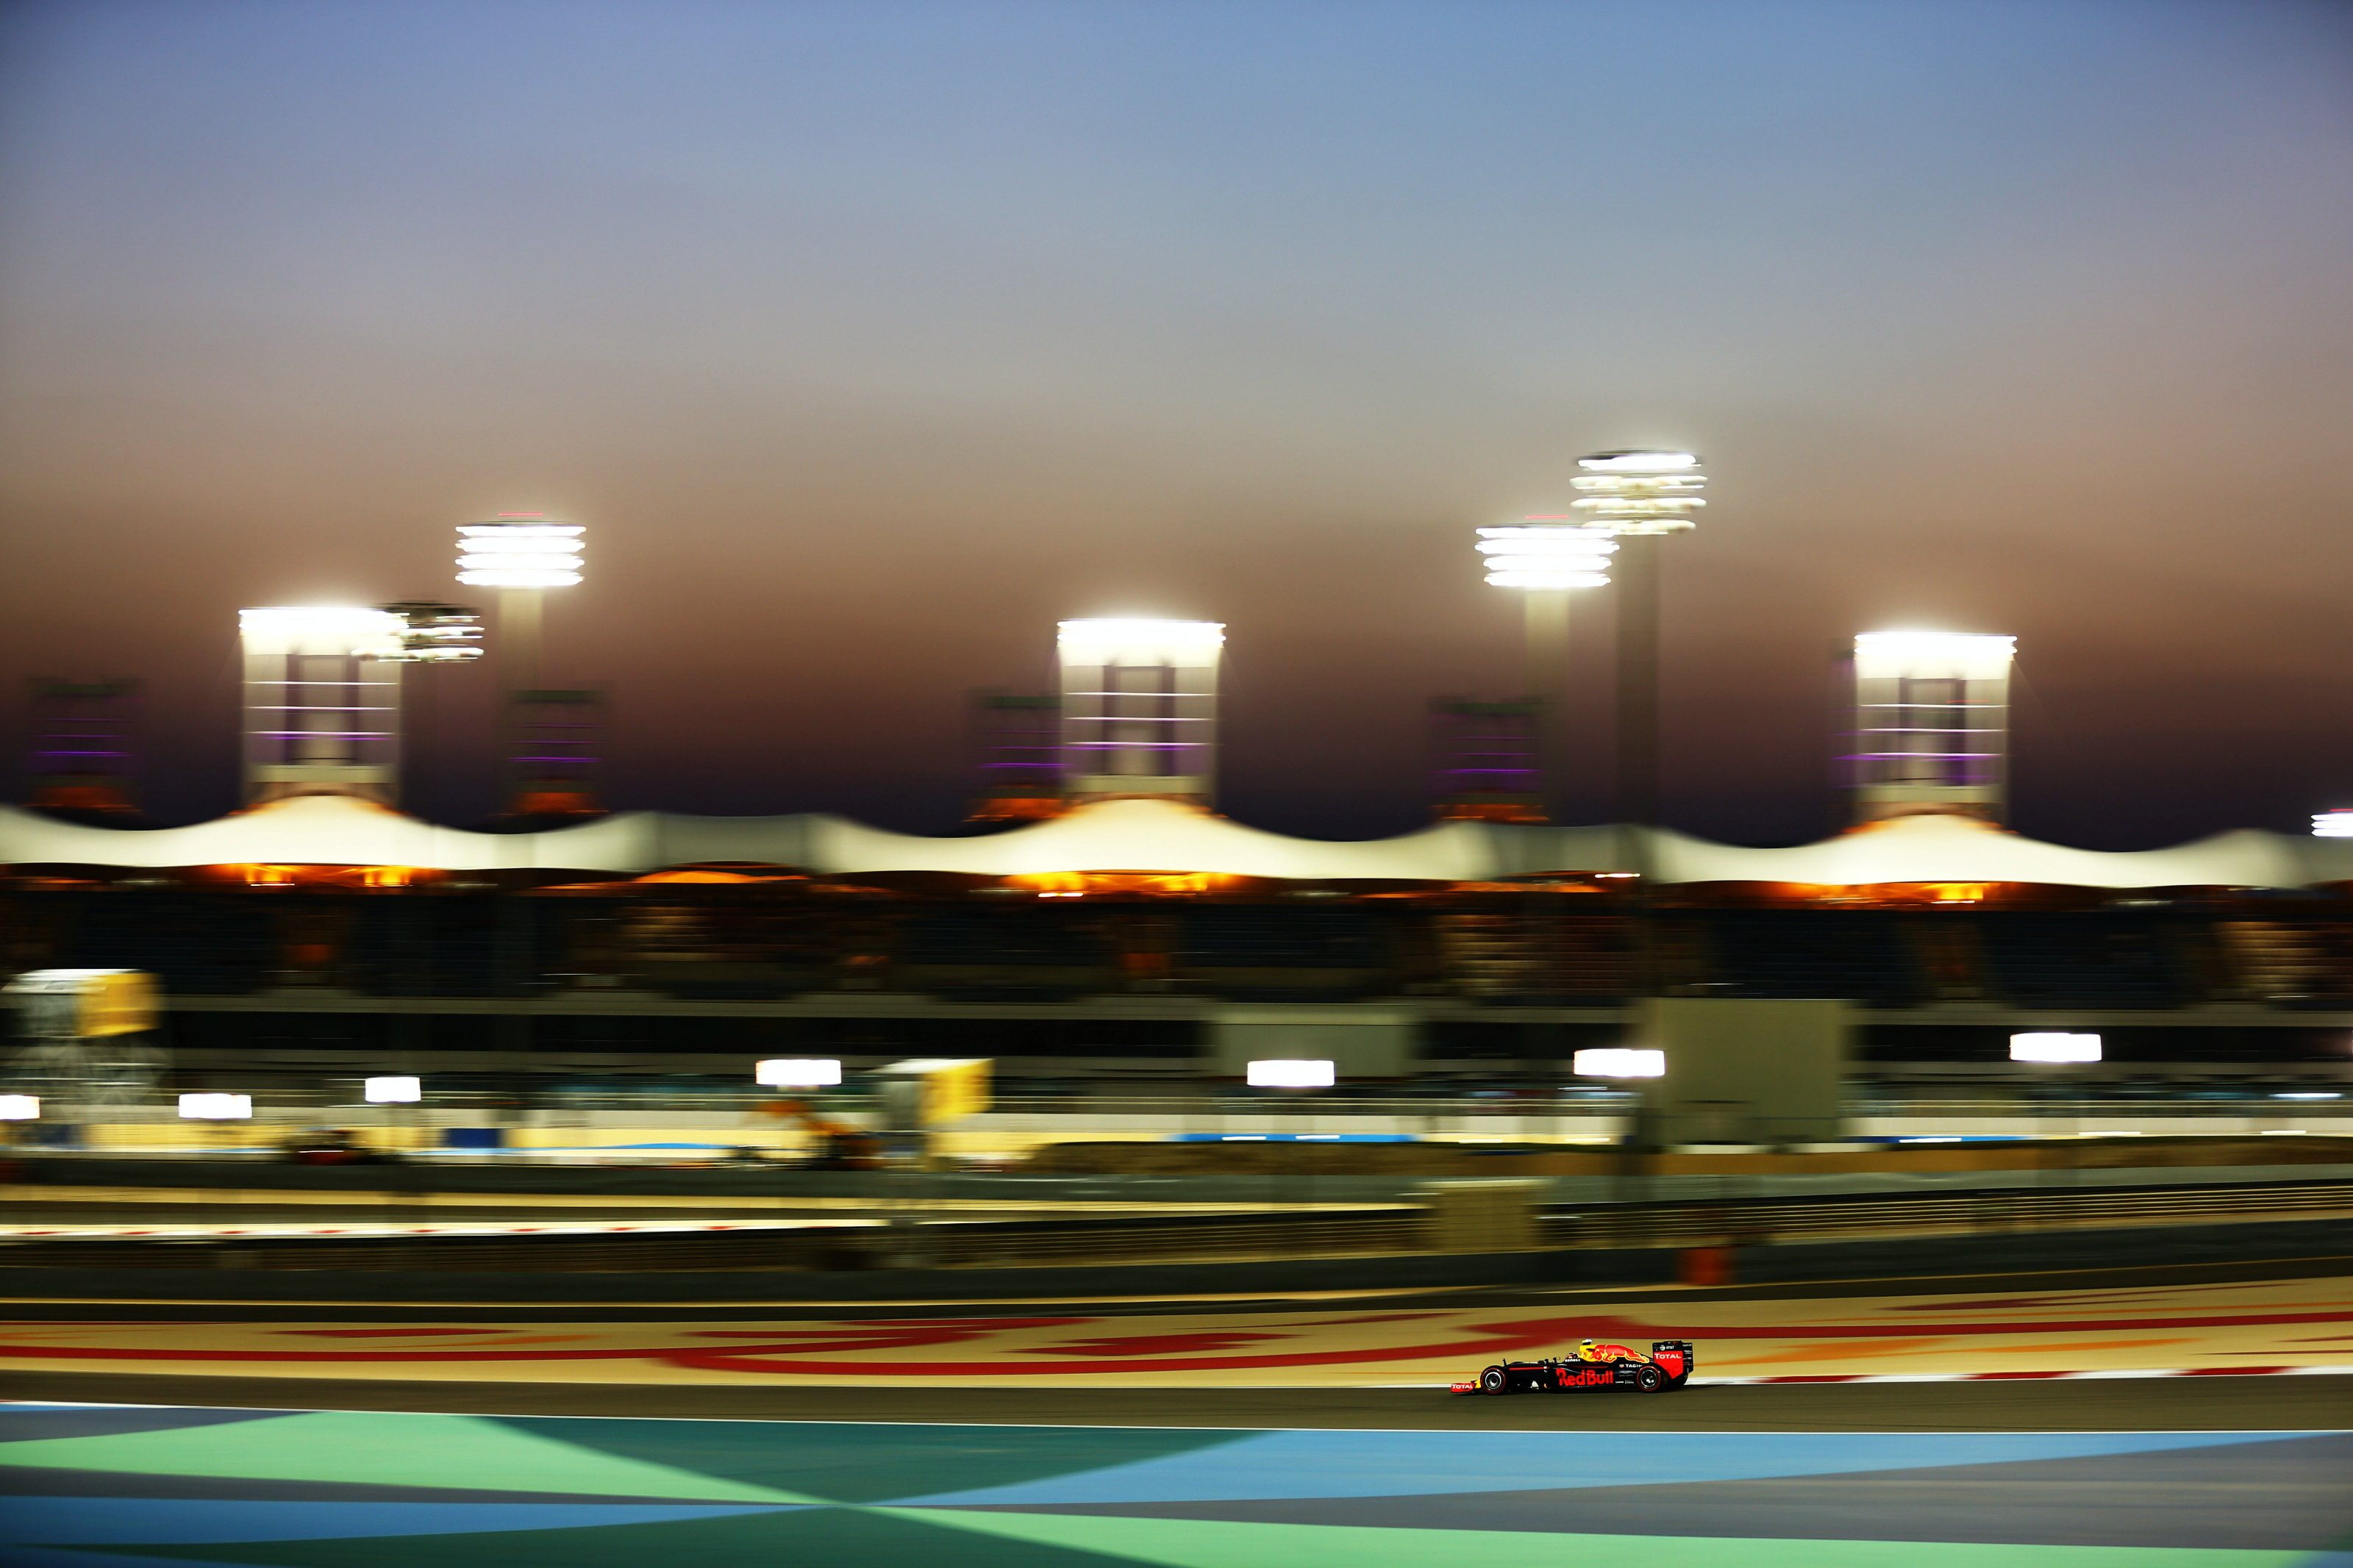 Daniil Kvyat on track at the 2016 Bahrain GP qualifying session